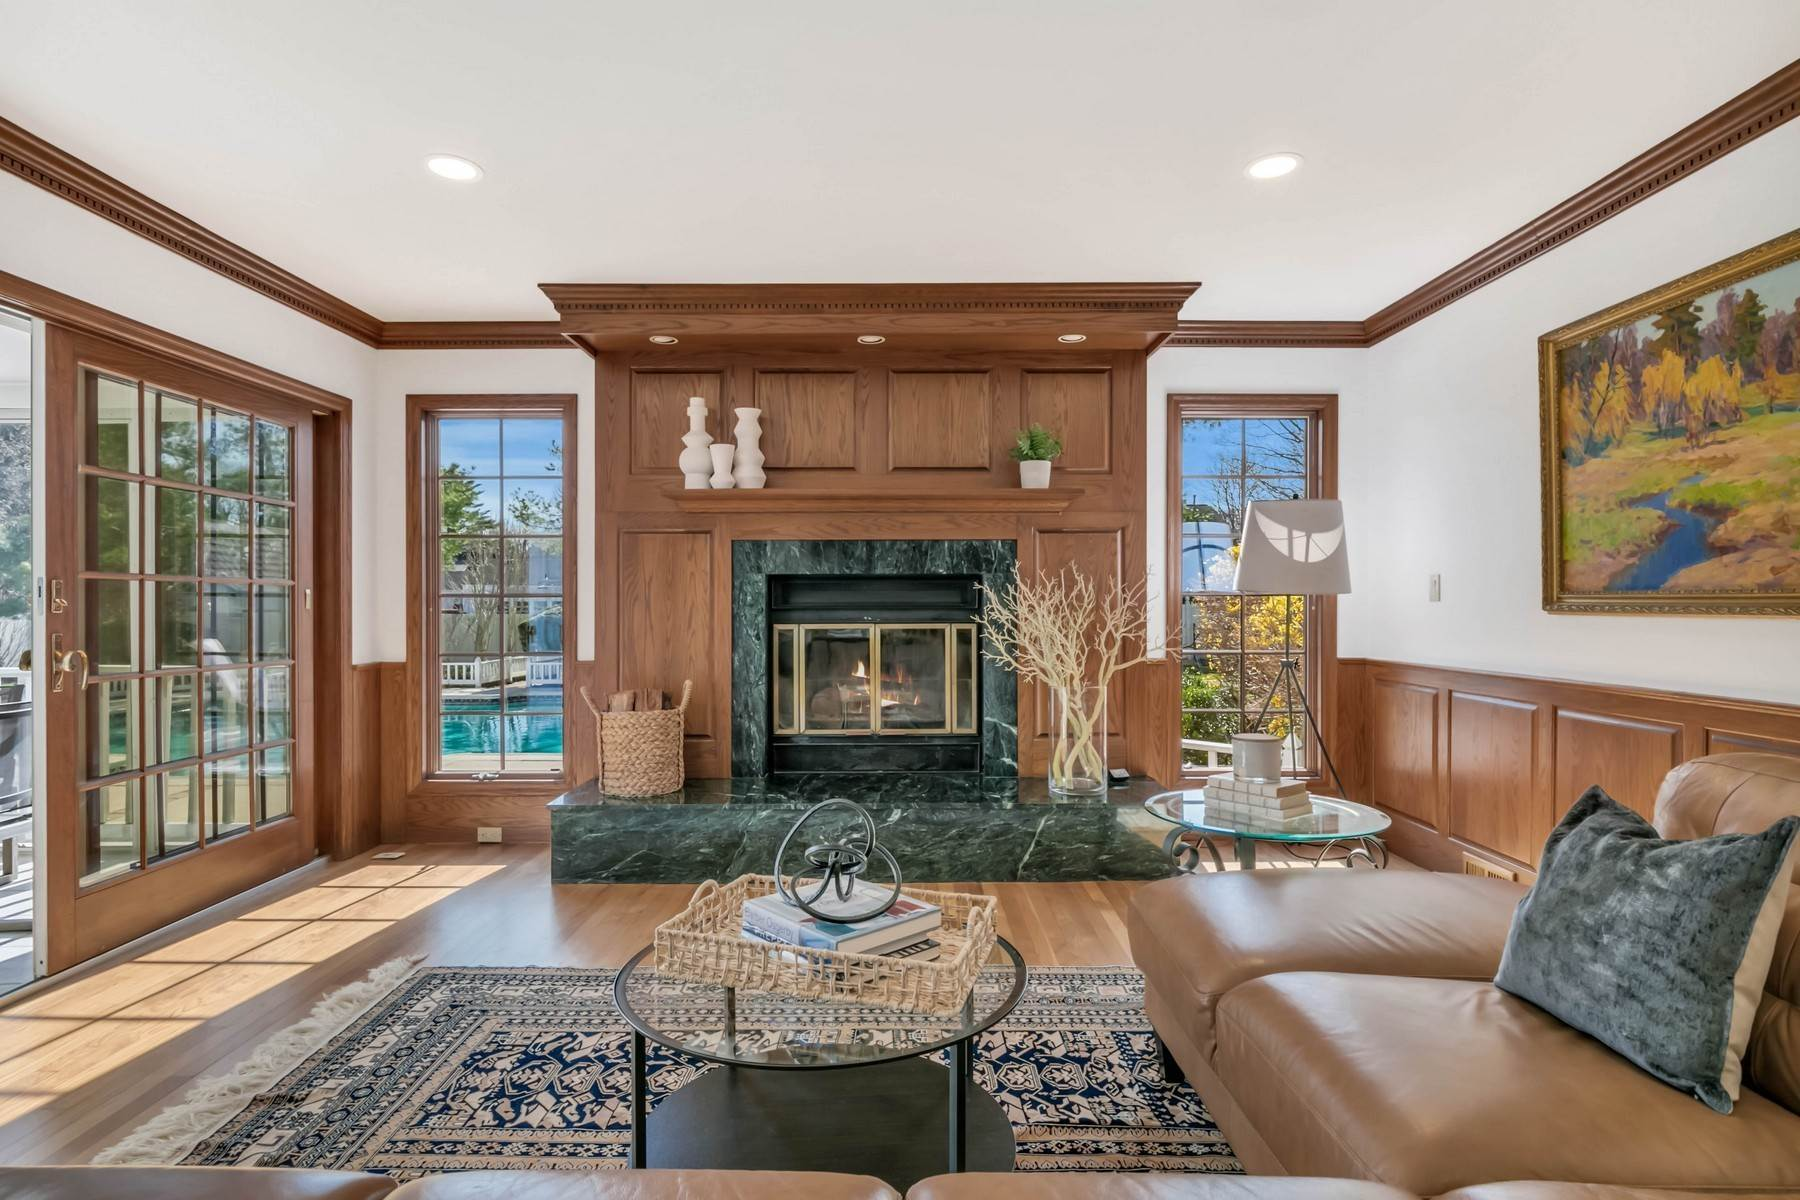 8. Single Family Homes for Sale at Elegance Meets Edgy Infused with Exceptional Quality and Custom Updates 130 Lippincott Road Little Silver, New Jersey 07739 United States